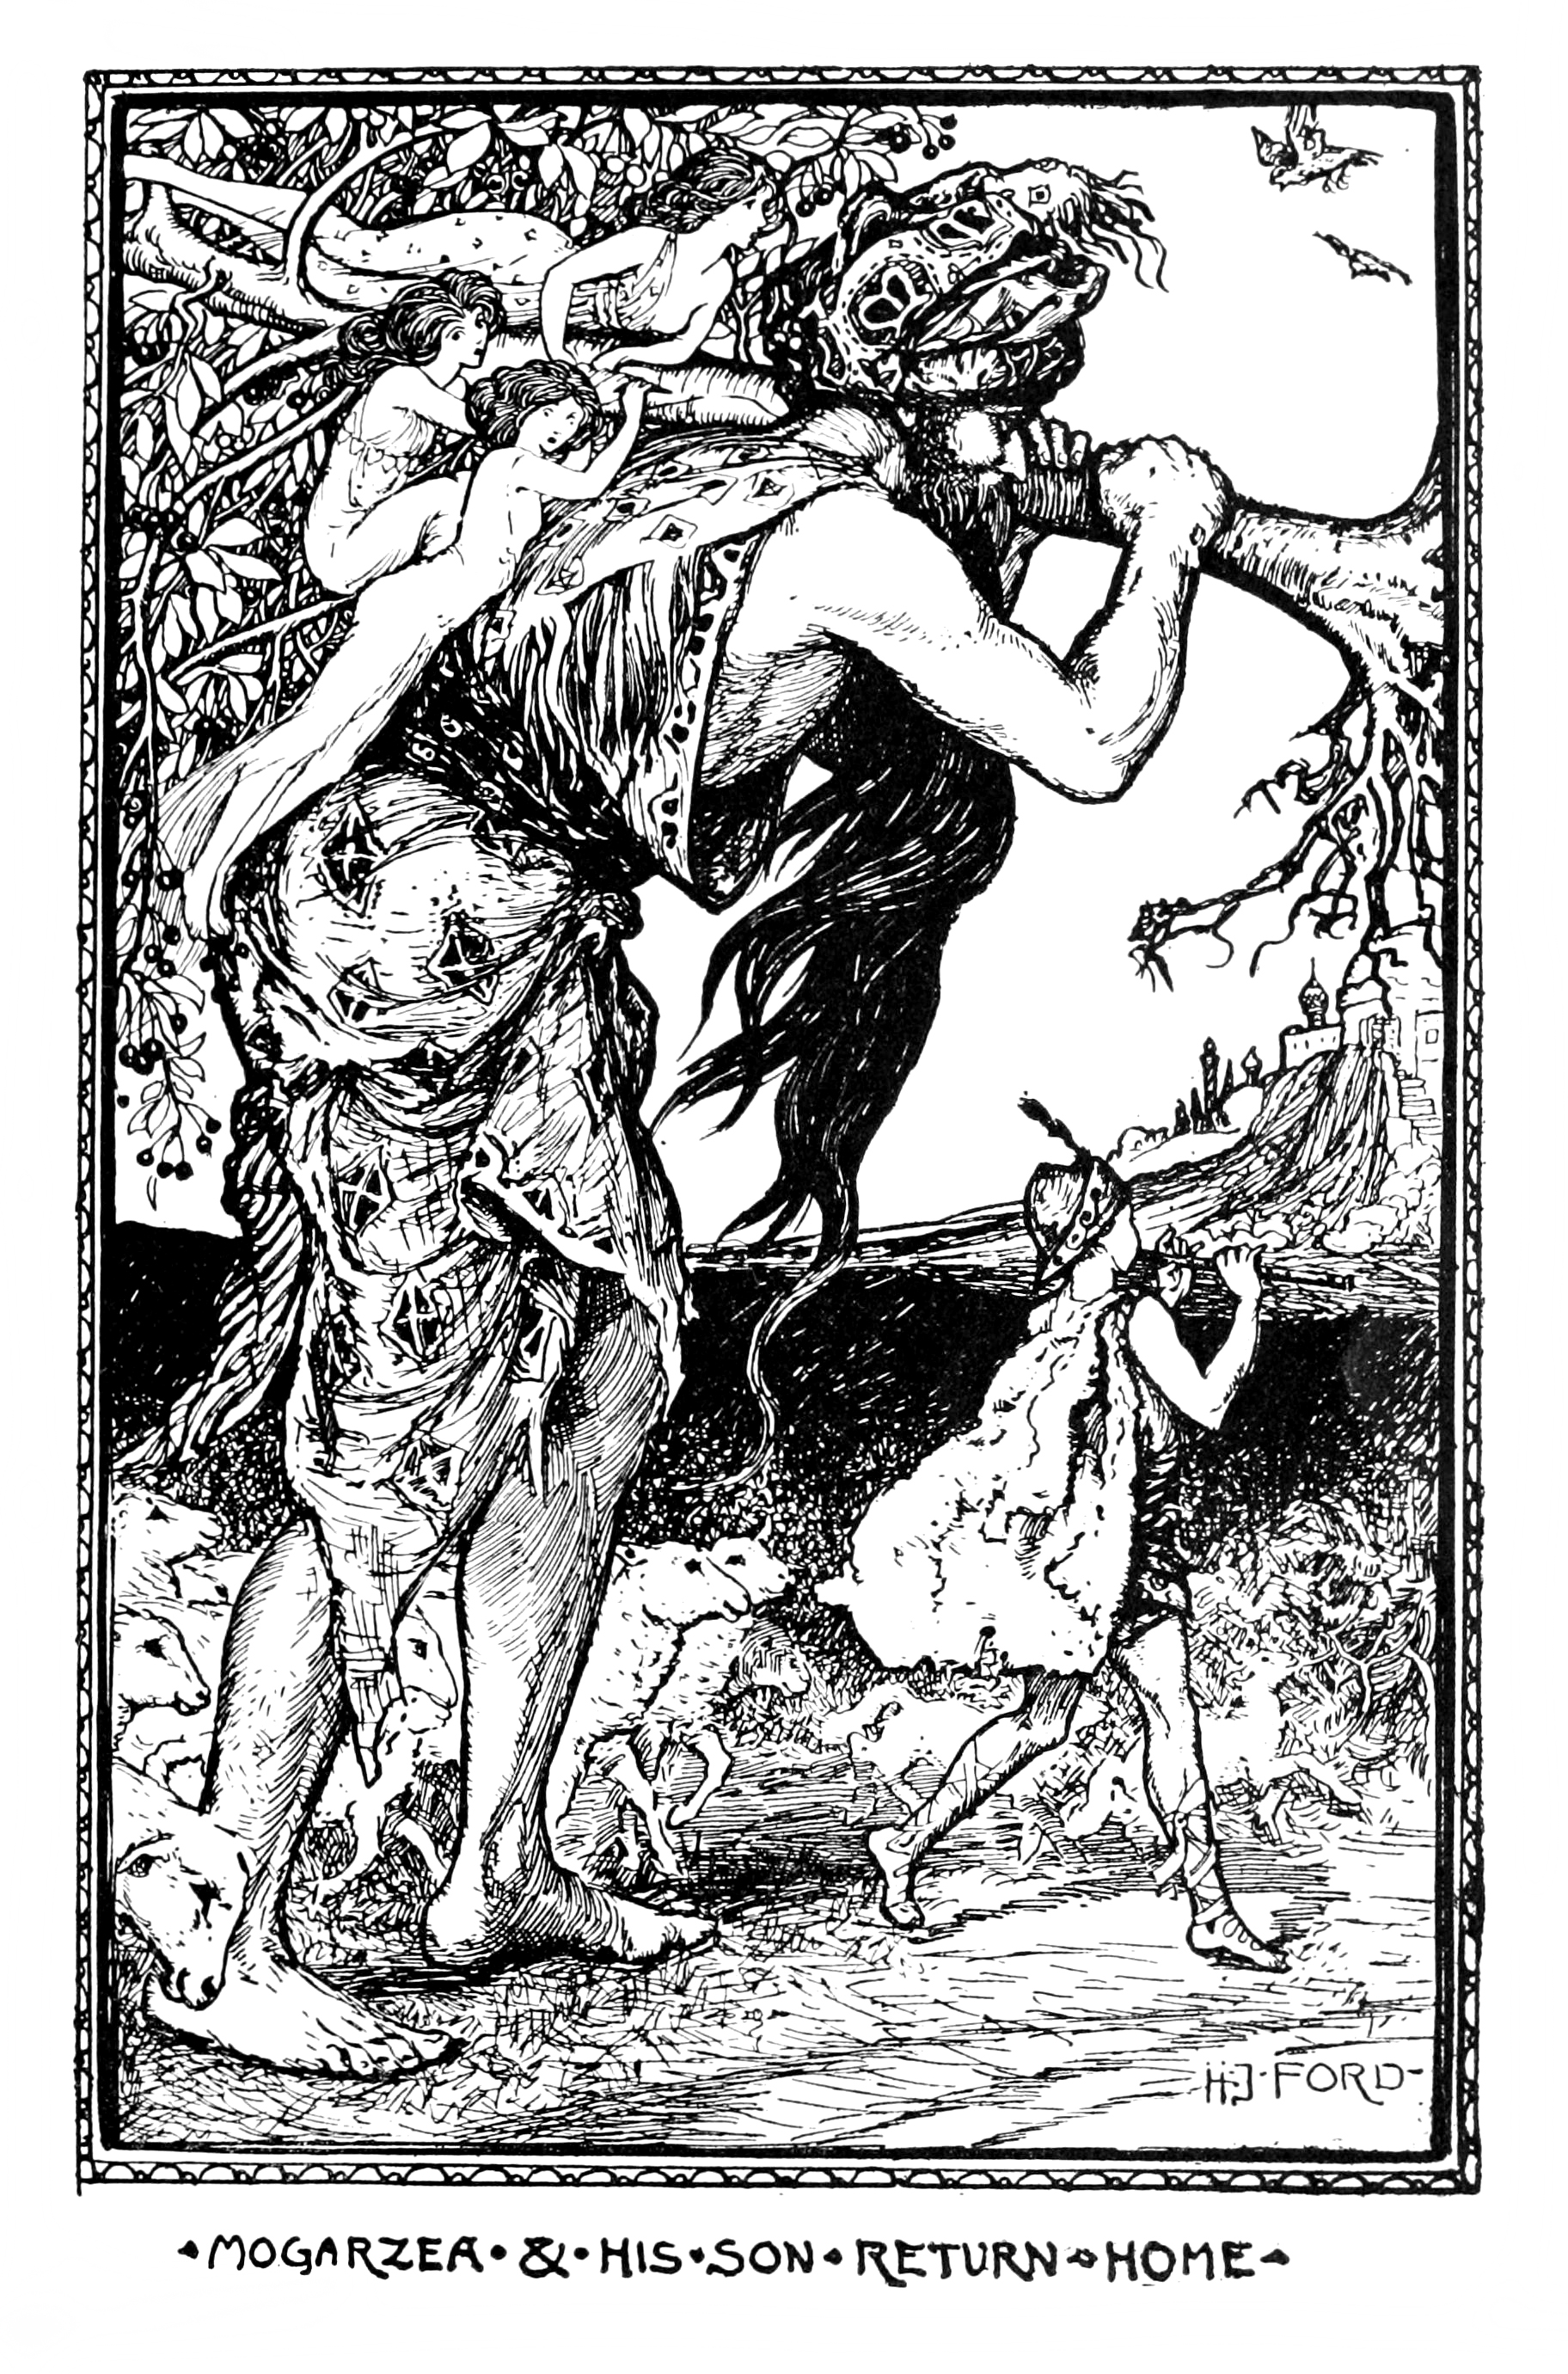 Henry Justice Ford - The violet fairy book, edited by Andrew Lang, 1906 (illustration 11)